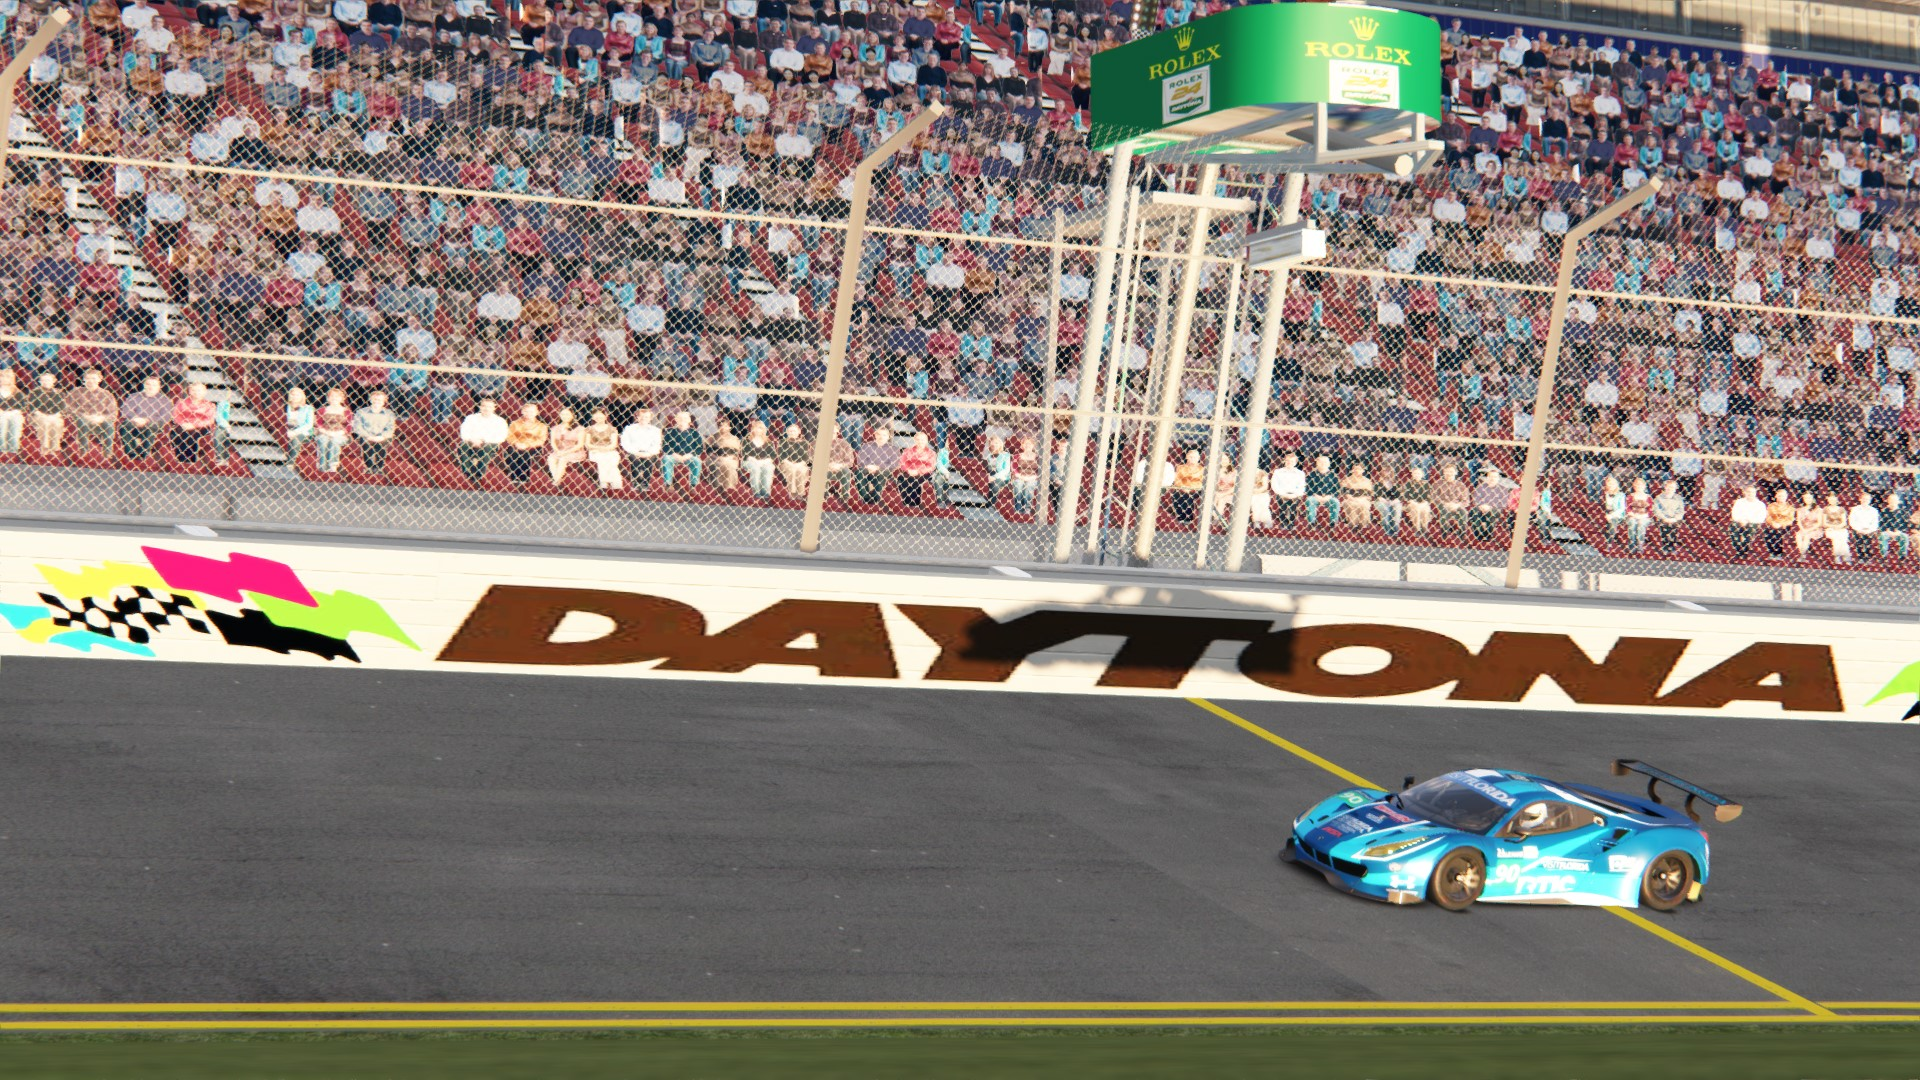 Screenshot_ks_ferrari_488_gt3_daytona_roadcourse_17-12-117-14-16-34.jpg